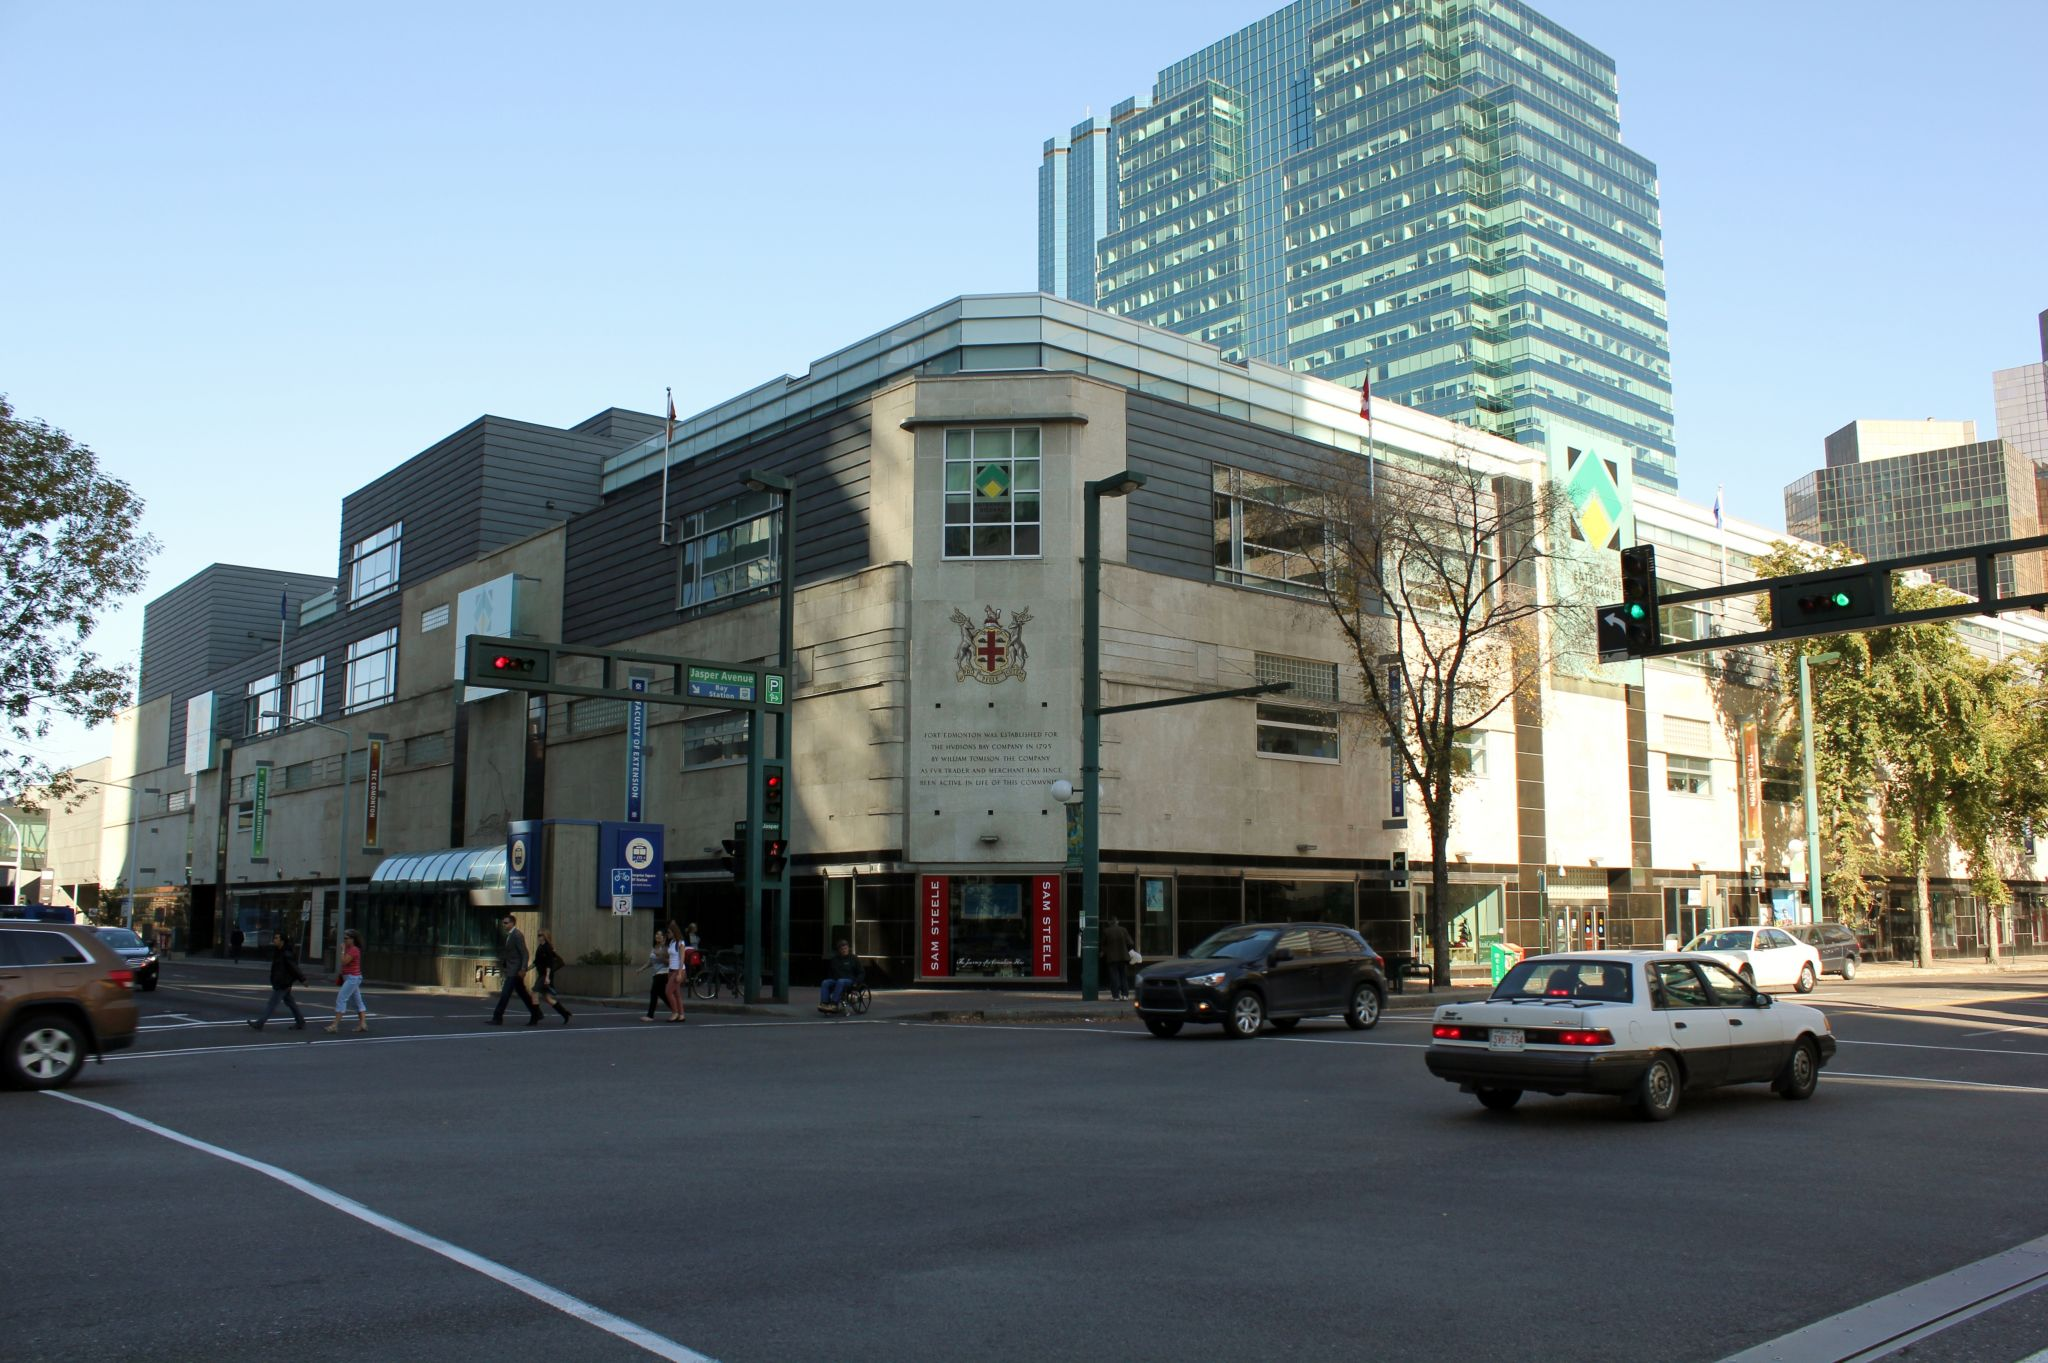 The renovated Hudson's Bay Building now serves as a campus facility at UAlberta. Photo © Arctic.gnome. Photo licensed under Creative Commons Attribution-Share Alike 3.0 Unported